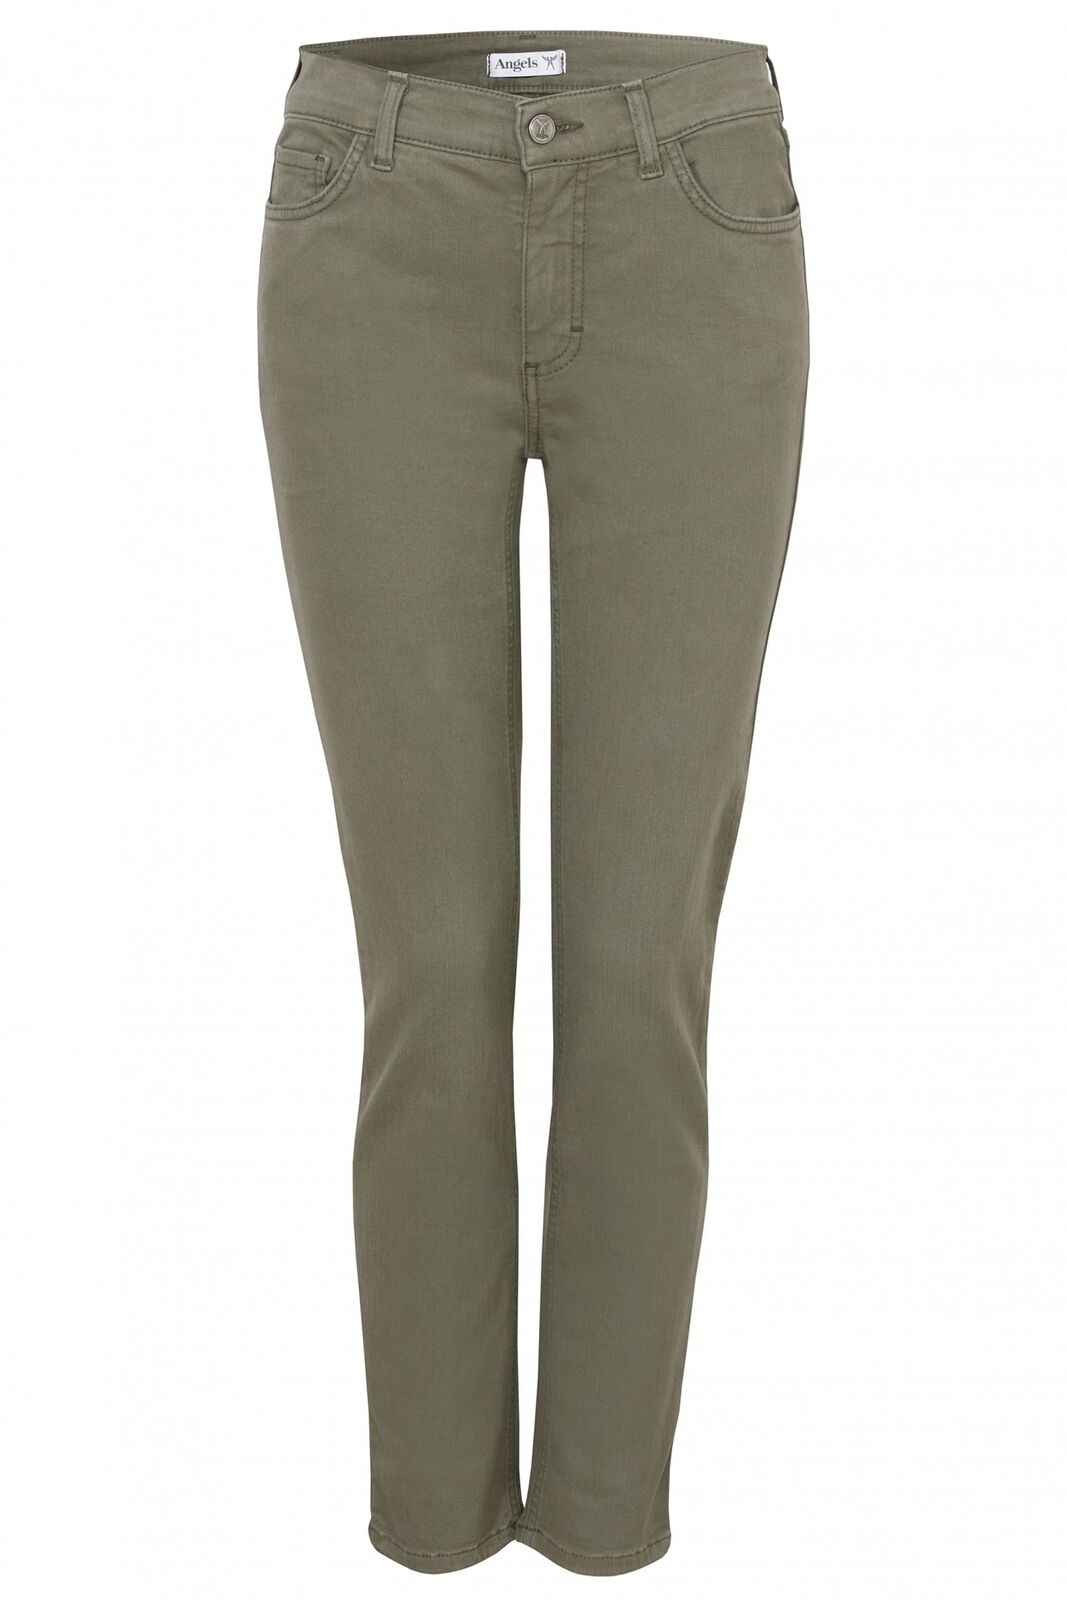 Angels Skinny modische Slim Fit Jeans in Light Khaki Stretch